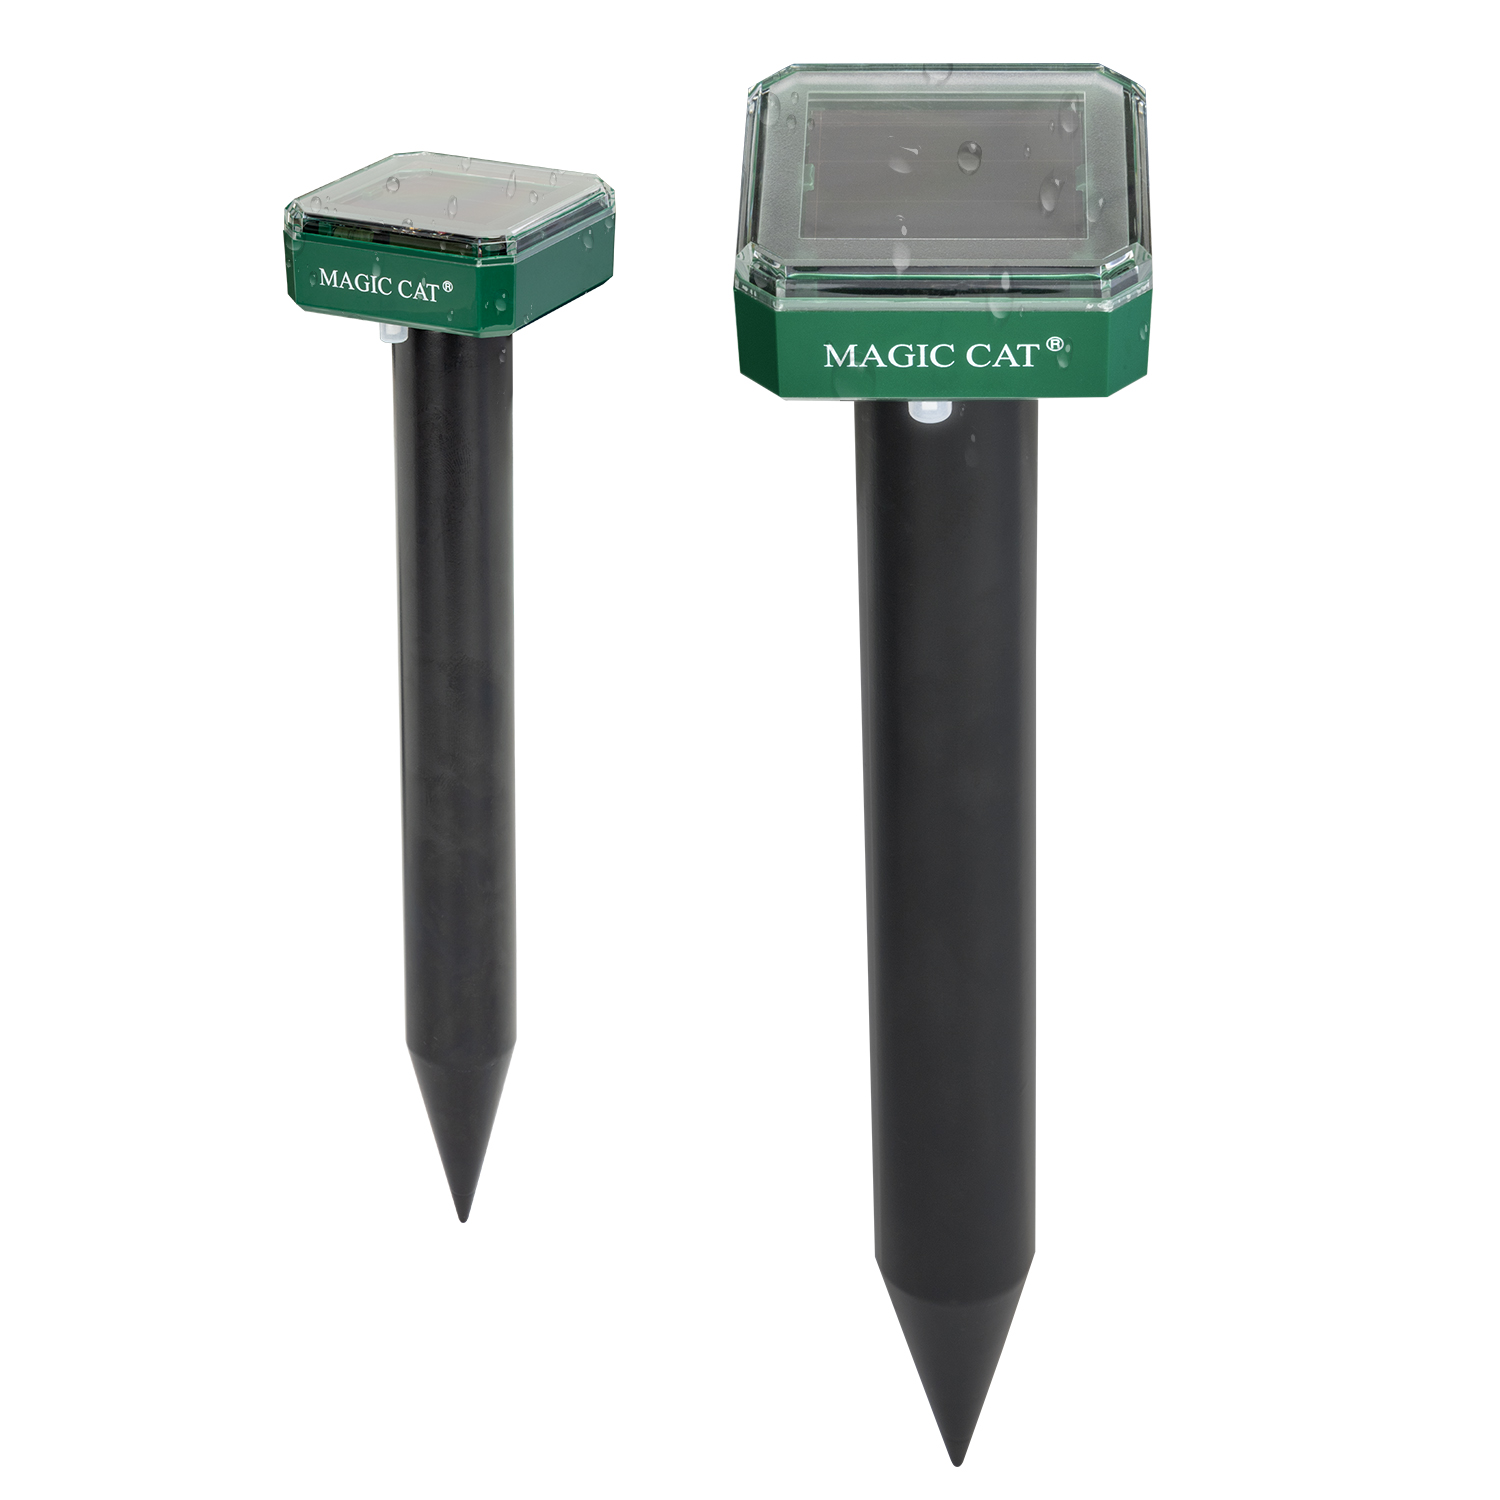 MAGIC CAT Solar Mole Repellent, Ultrasonic & Solar Powered Gopher Repellent, Waterproof Sonic Groundhog Repeller Rodent Gopher Deterrent Vole Chaser for Lawn, Yard & Garden of Outdoor Use (2 Pack)